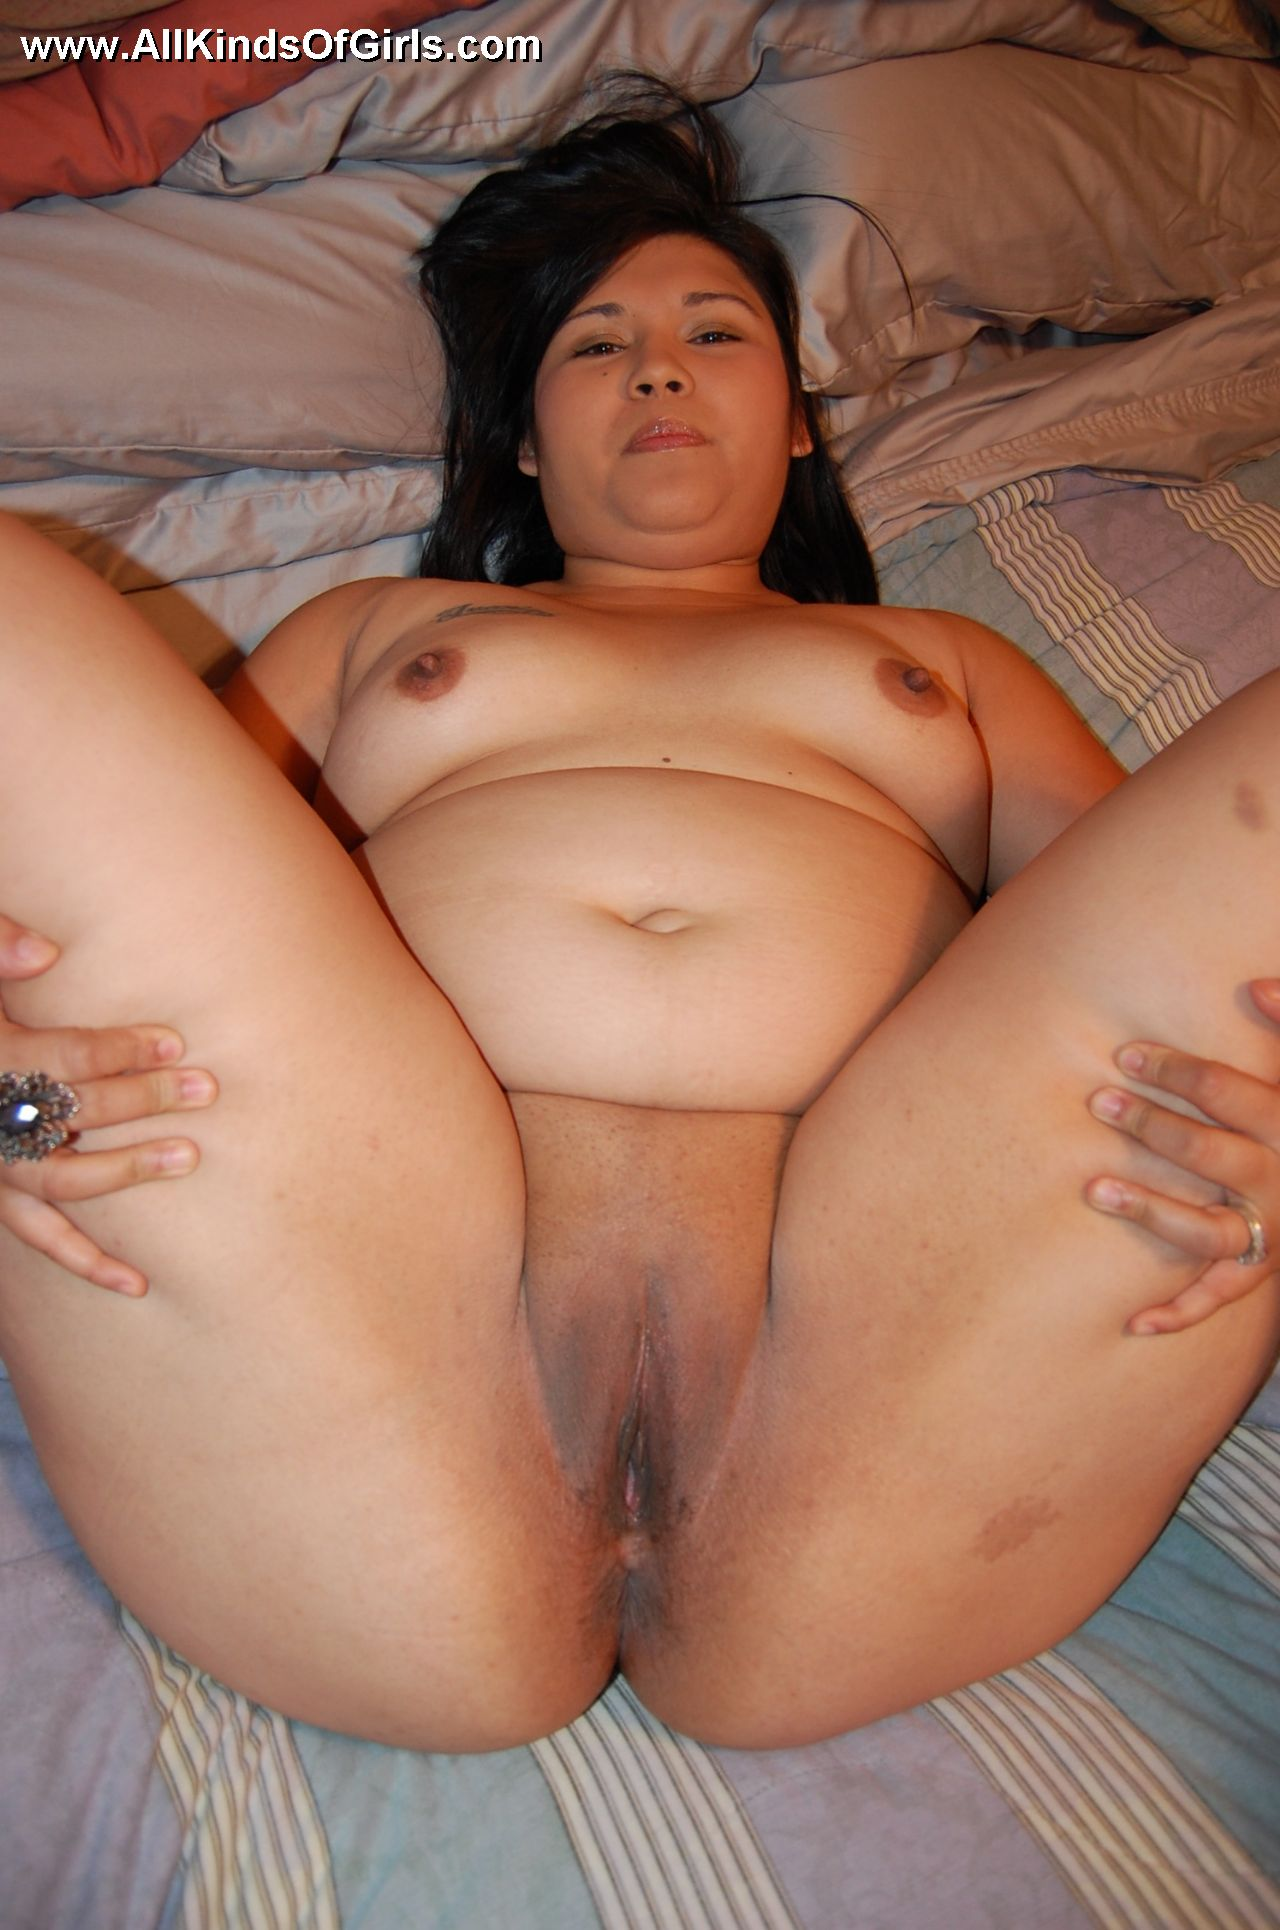 Good Beautiful chubby girl pussy really. And